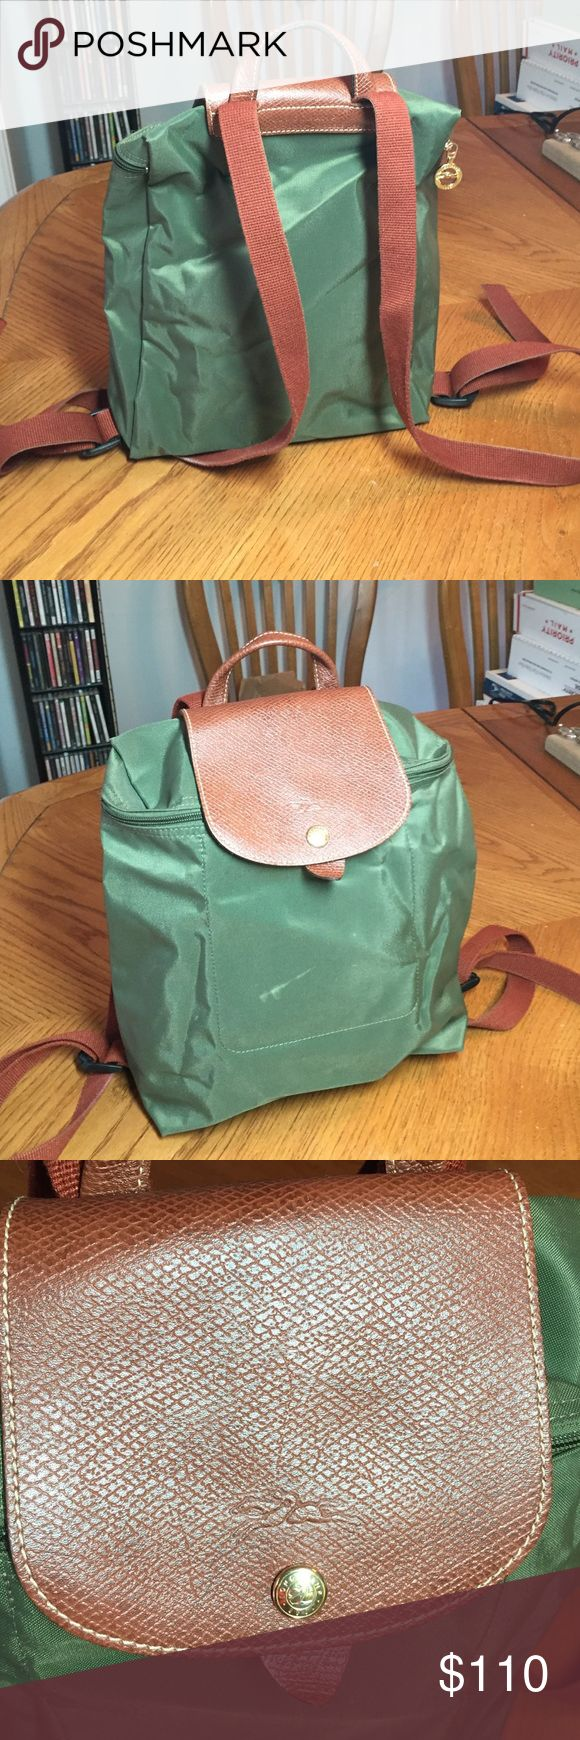 Longchamp green backpack Barely used. In great condition but has scratch on front pocket. Longchamp Bags Backpacks